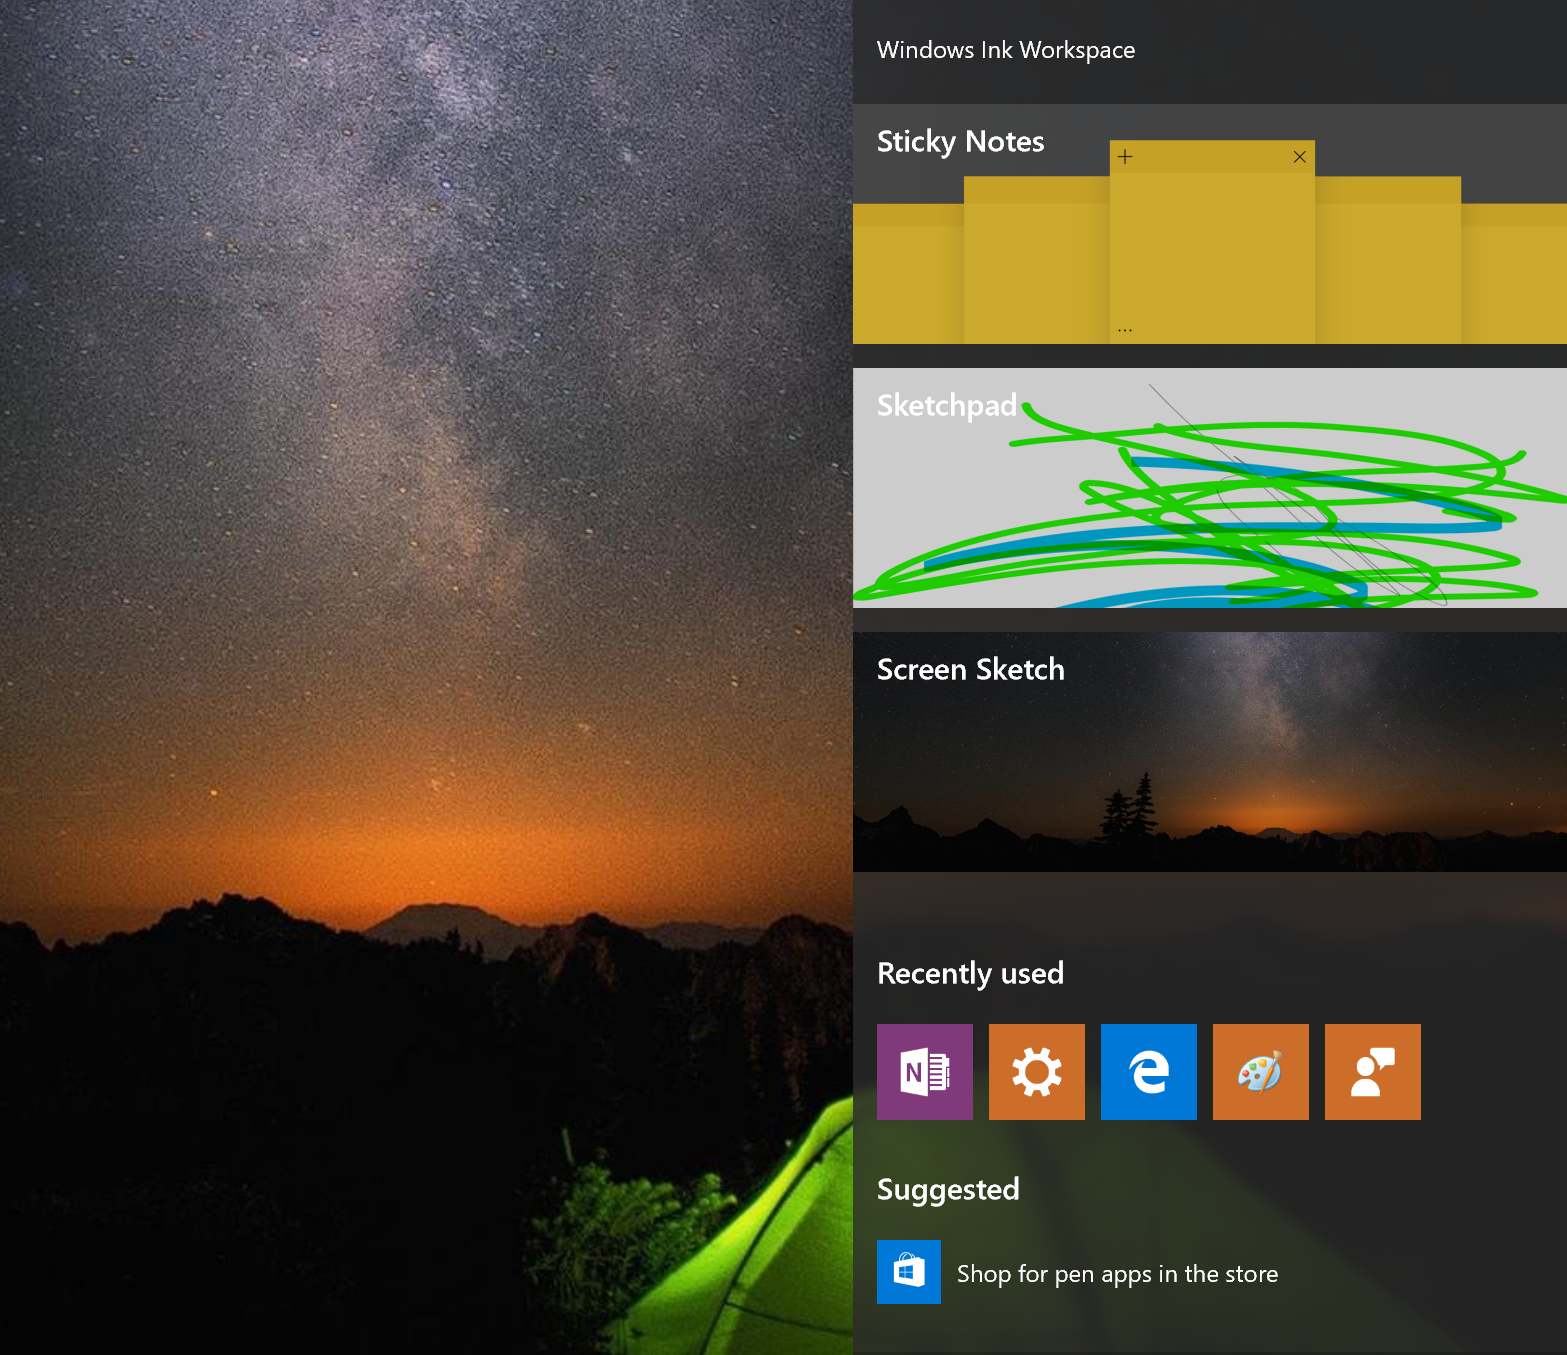 Hands on with windows 10s new windows ink pcworld the windows ink workspace puts pen enabled windows apps at the top with more granular settings down below malvernweather Choice Image